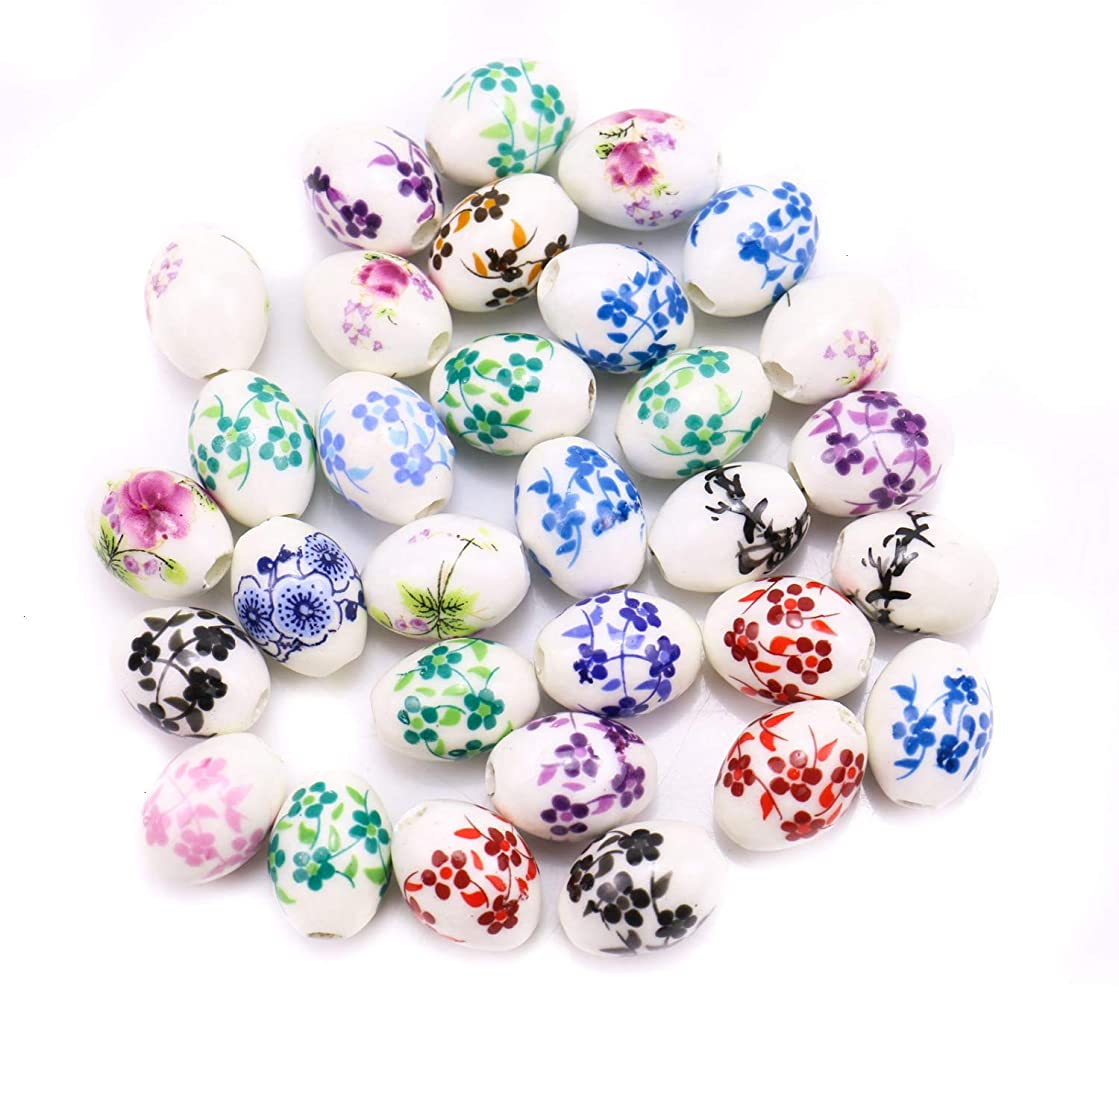 Monrocco 30Pcs Mixed Colors Floral Ceramic Beads,Round Spacer Beads for Jewelry Making DIY - 16 x 12mm